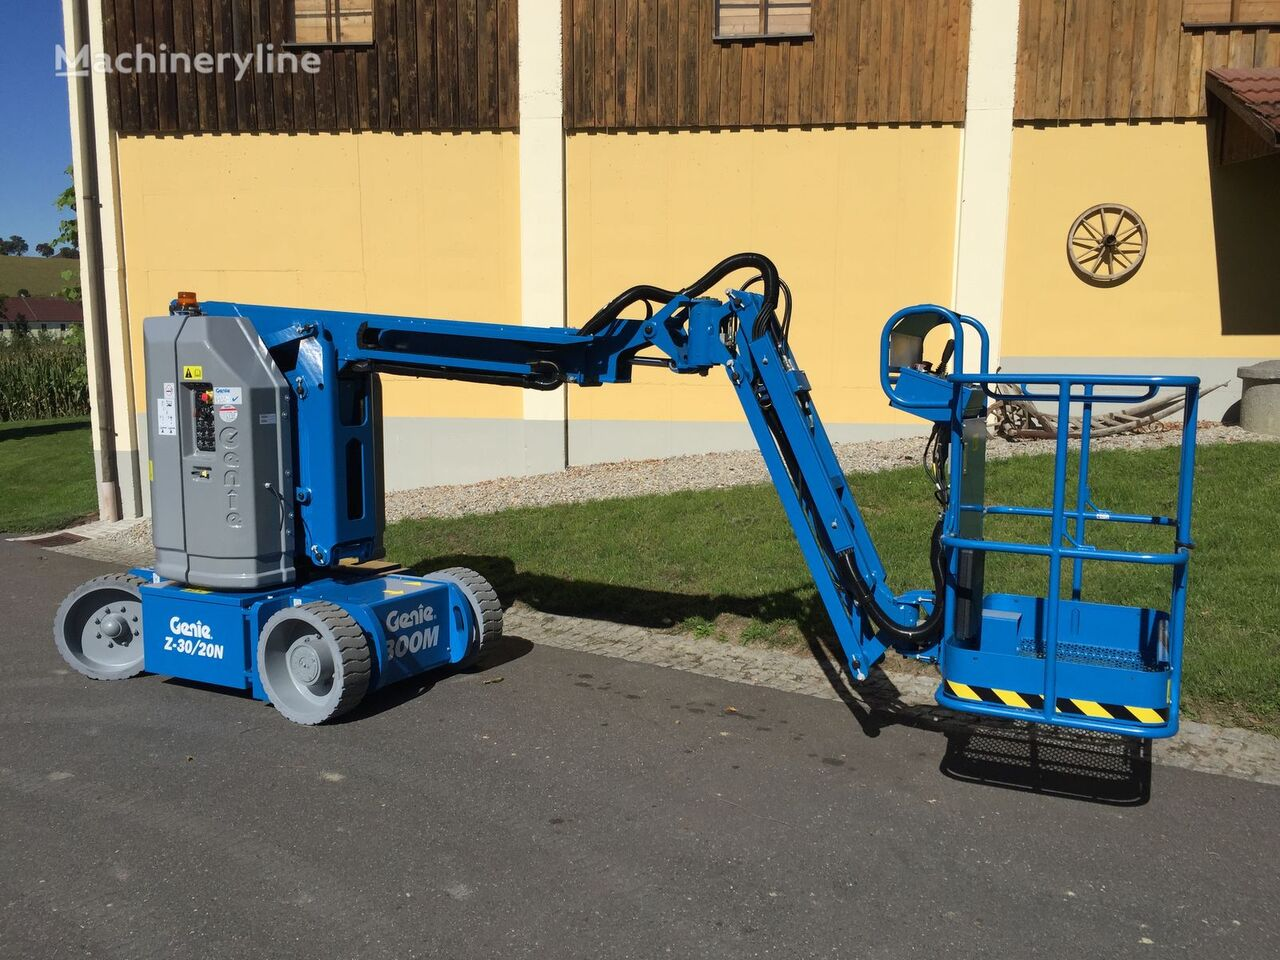 new GENIE Z30/20N RJ articulated boom lift